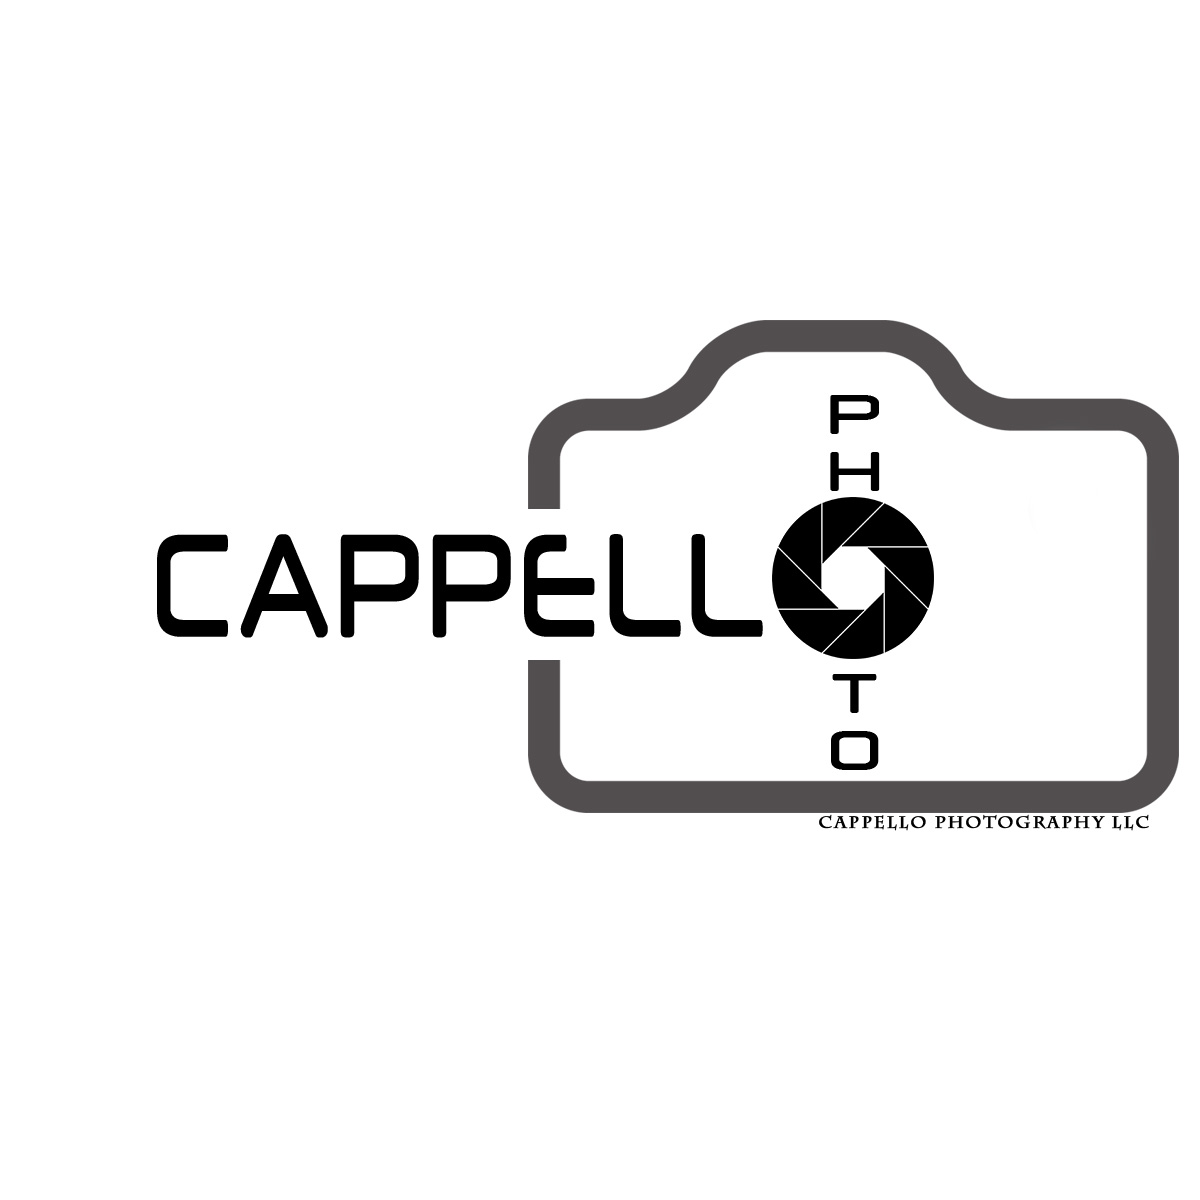 Cappello Photography LLC